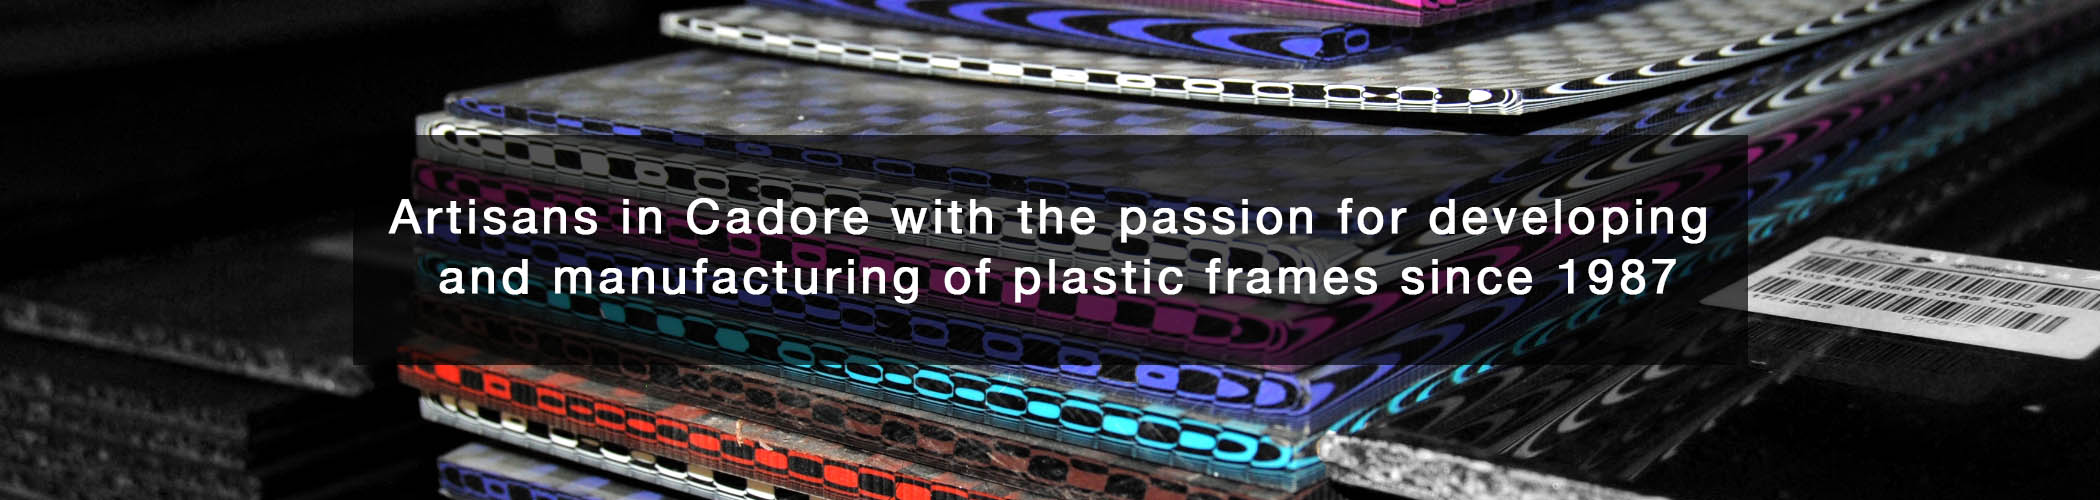 Artisans in Cadore with the passion for developing and manufacturing of plastic frames since 1987